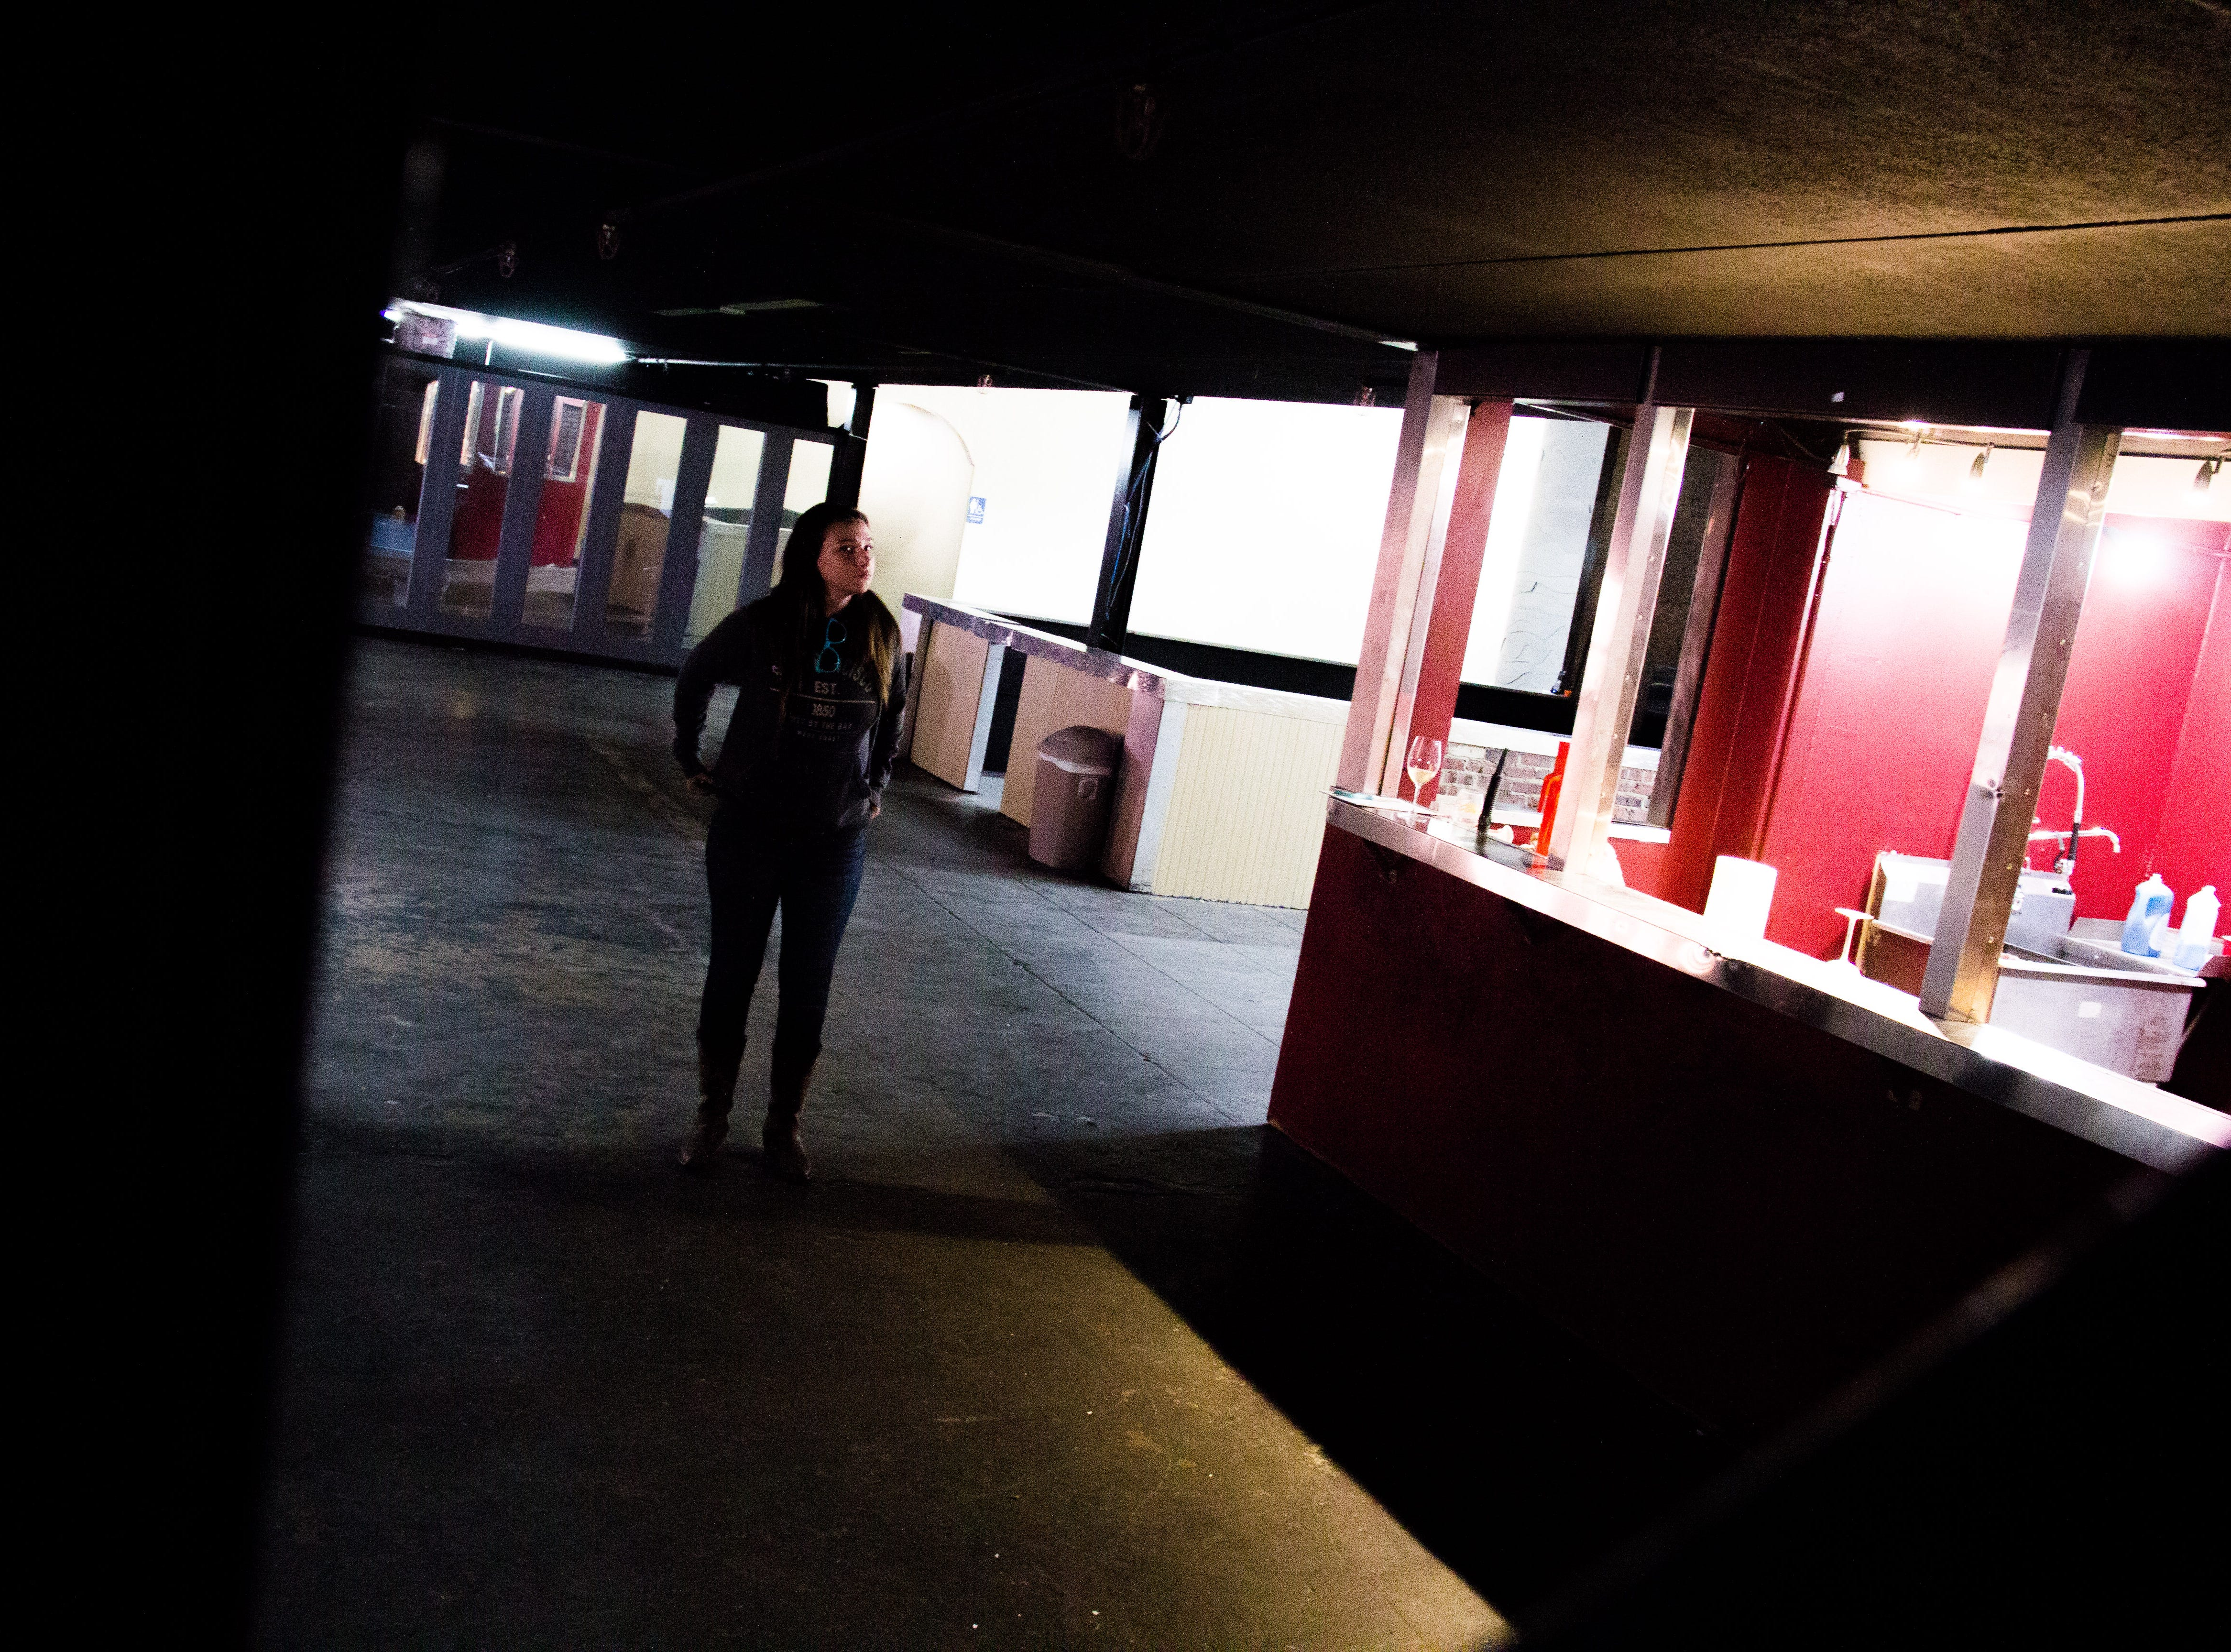 Katie Galyon, owner of the Winery at The International, stands near the venue's bar on Oct. 31, 2018. The bar will be split between a full-service bar and a tasting bar.